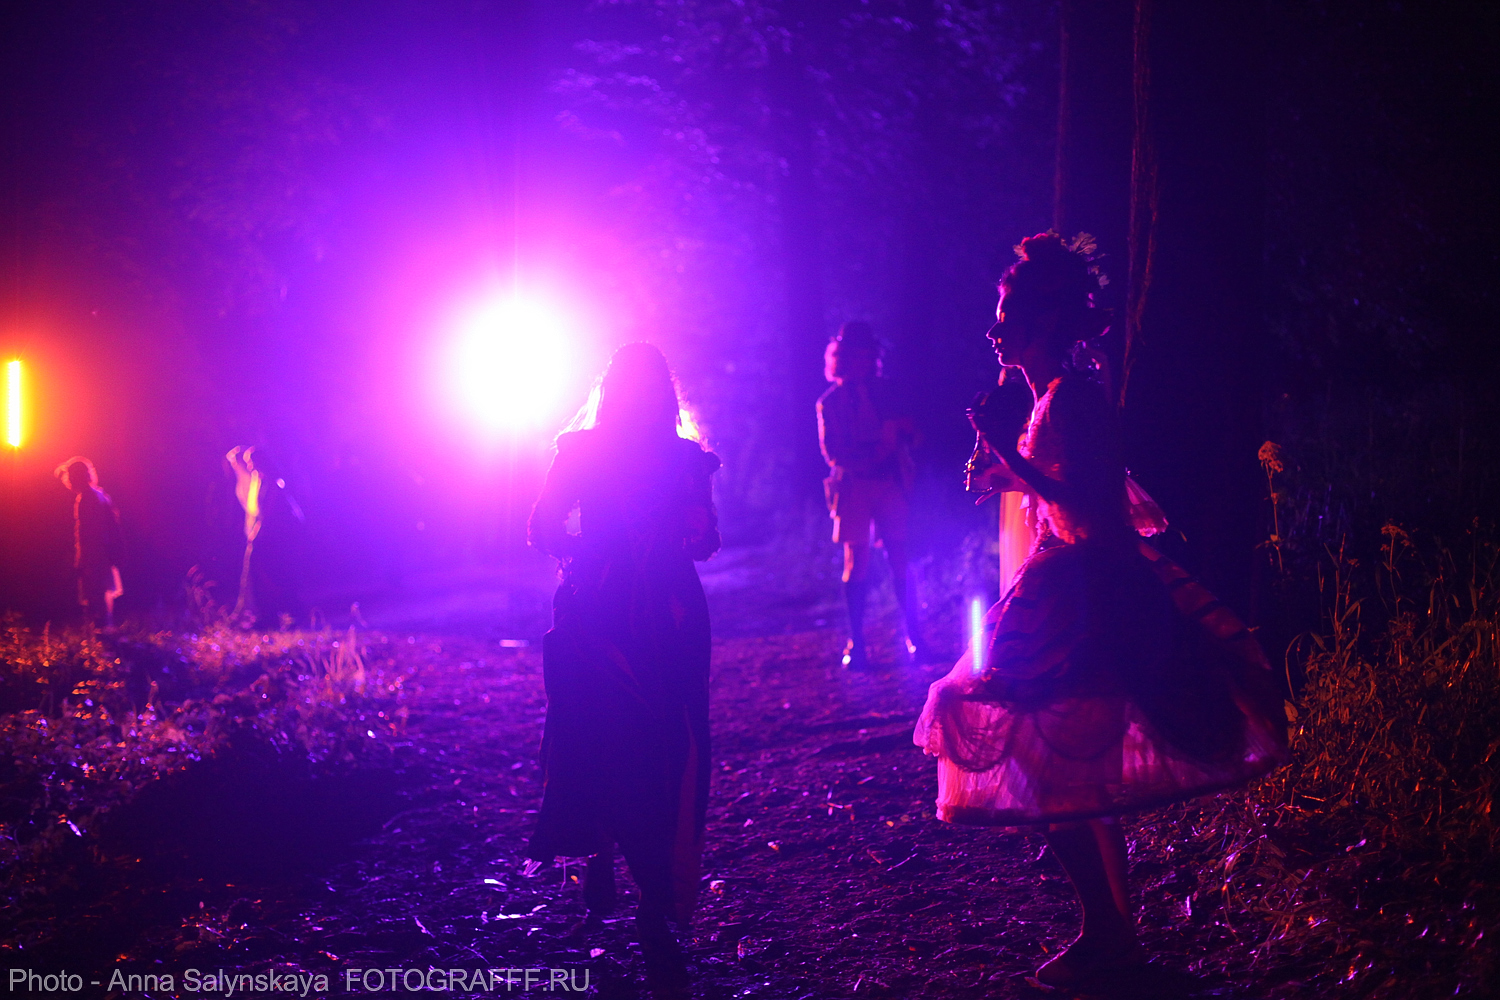 IMG_5570_AnnaSalynskaya_1 - Midsummer Night's Dream 2017